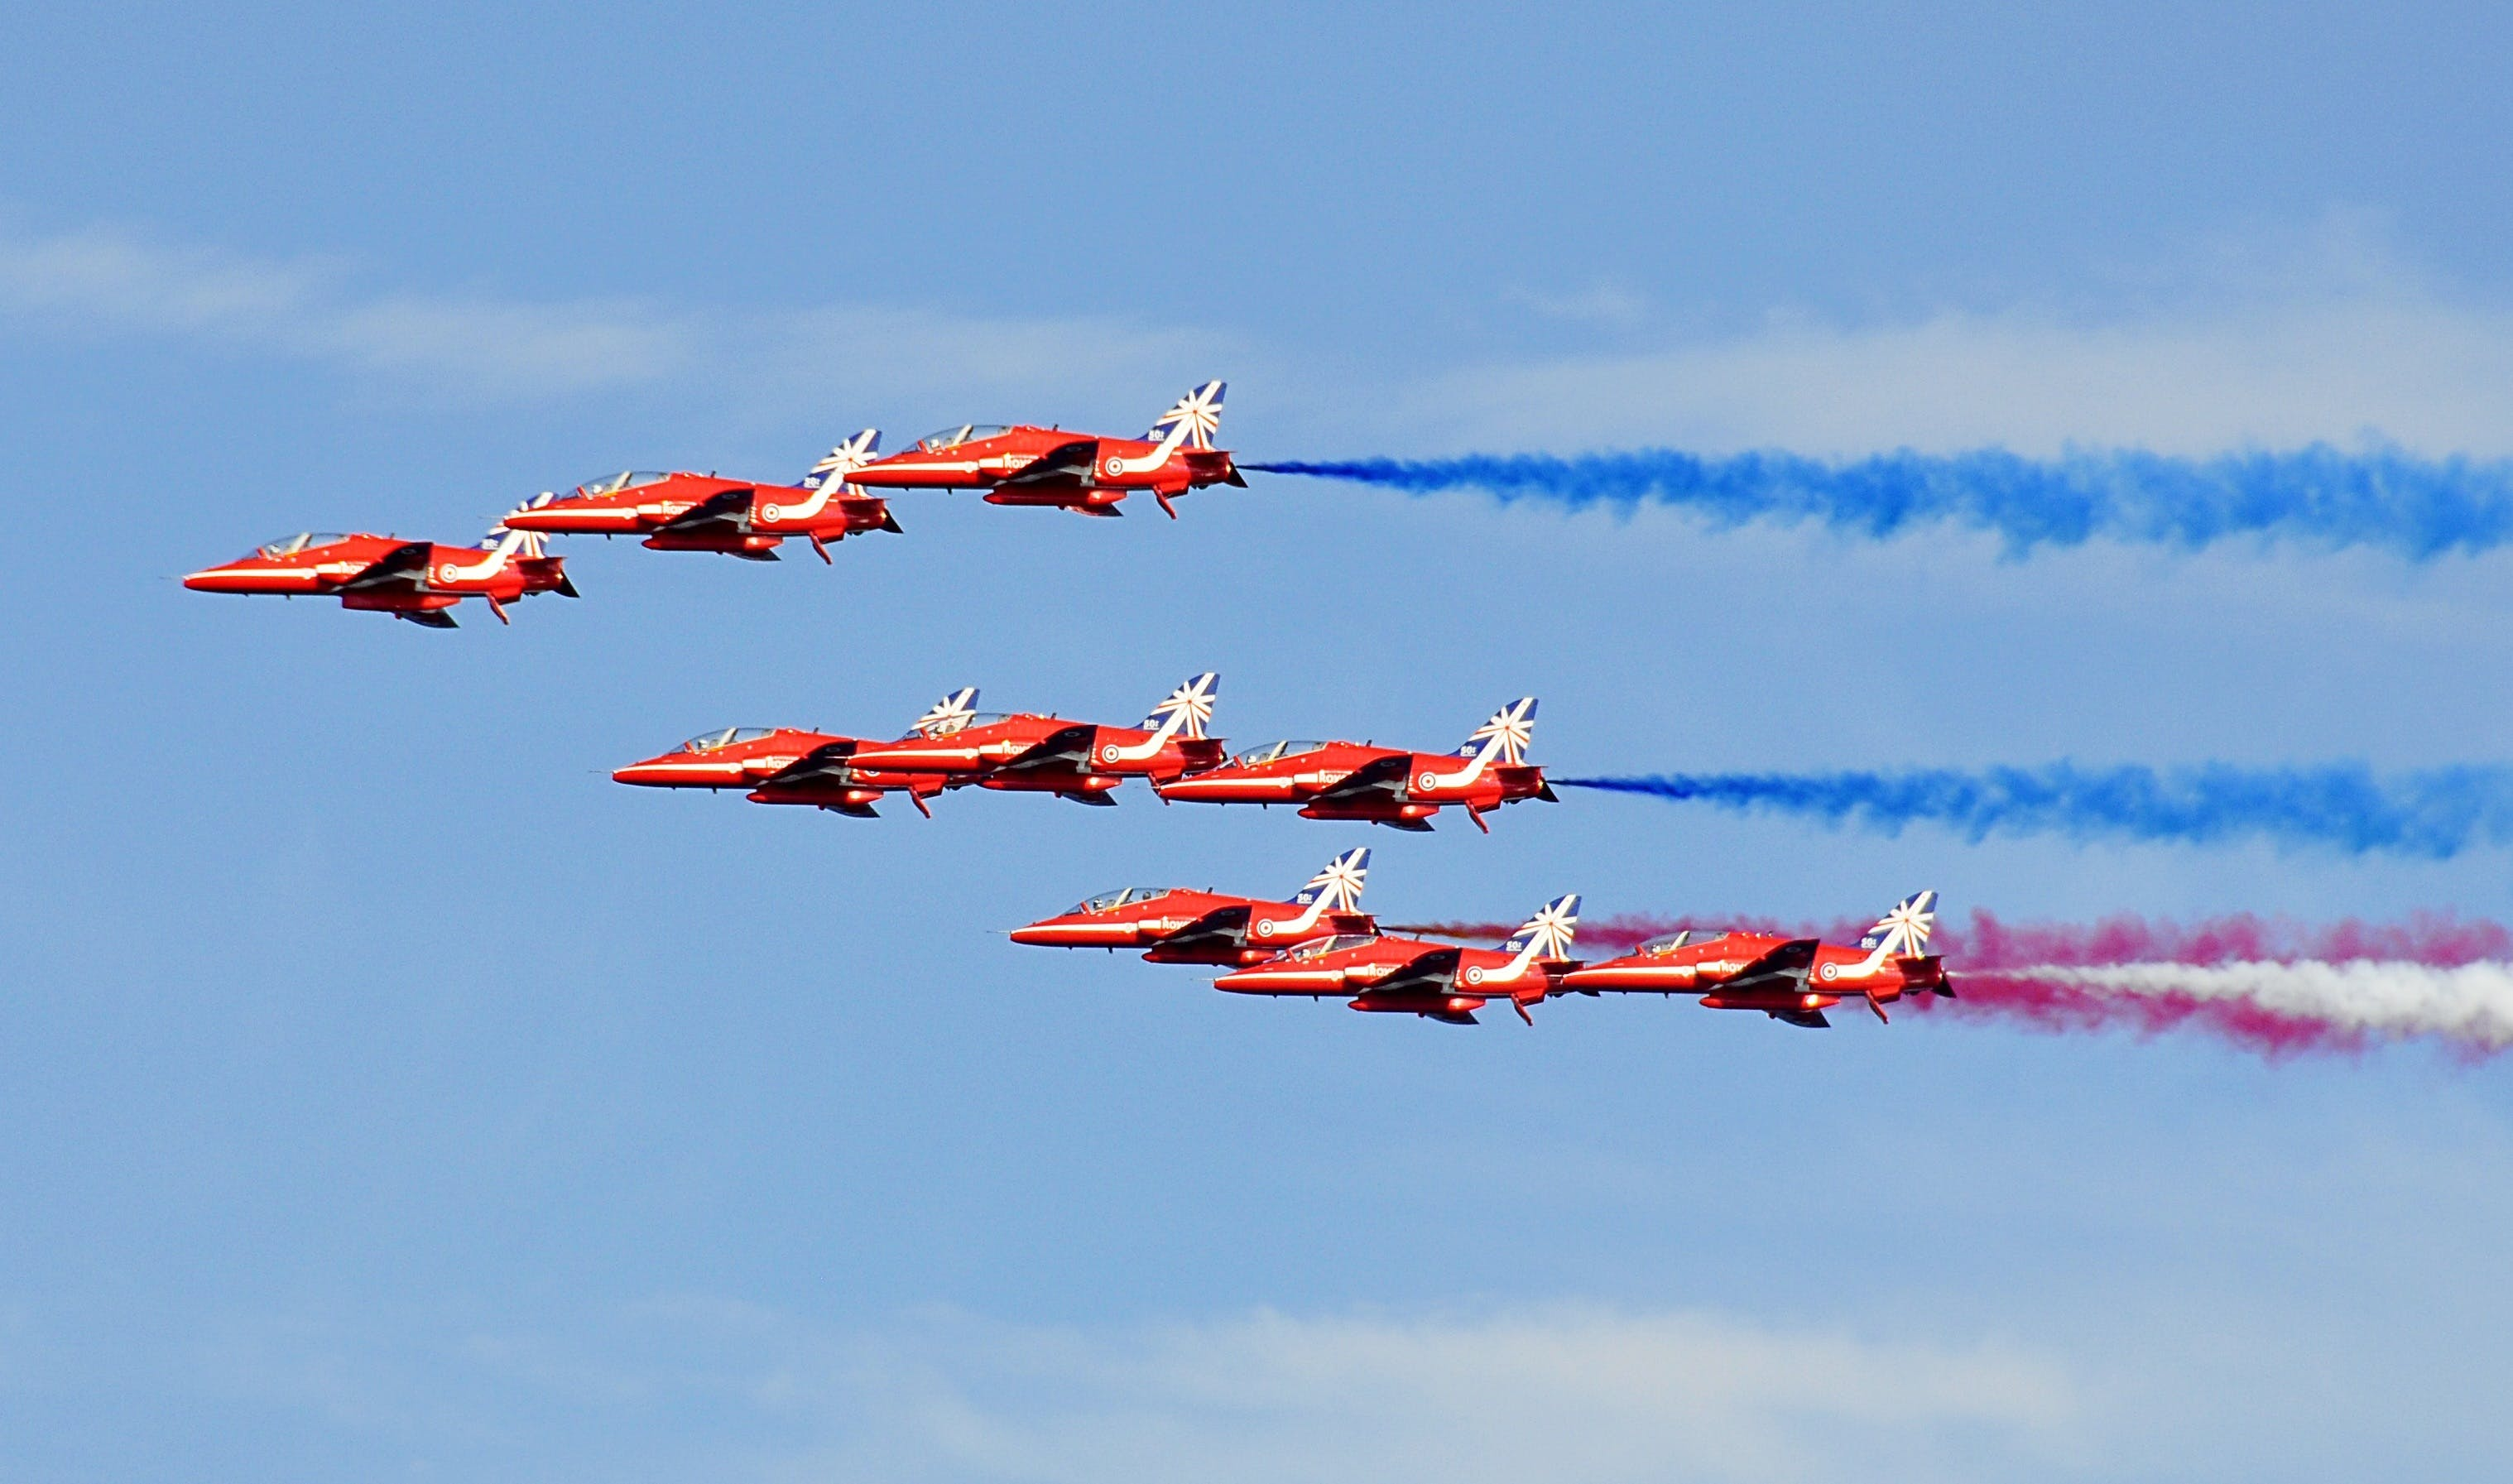 Red Jet Fighter Planes With Assorted Colors of Smoke on Horizon